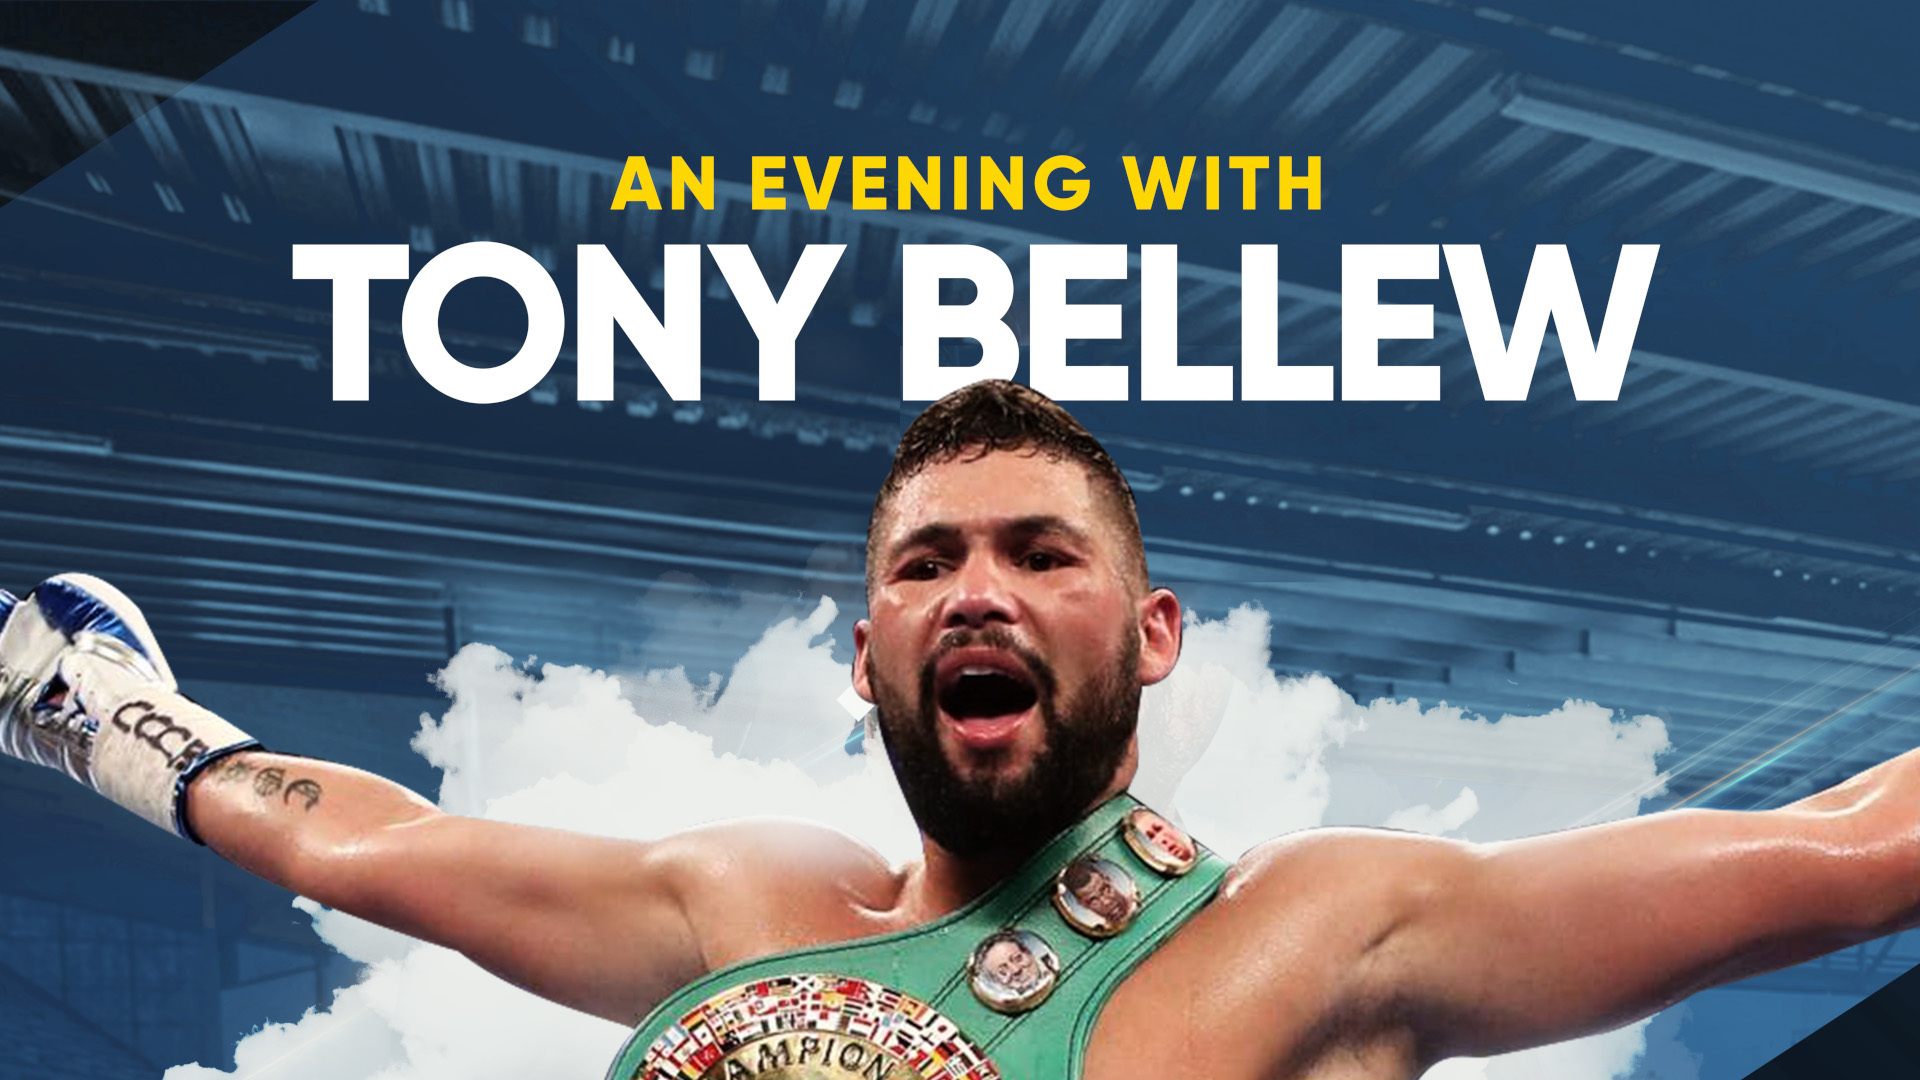 Tony 'The Bomber' Bellew to share boxing tales at Parr Hall